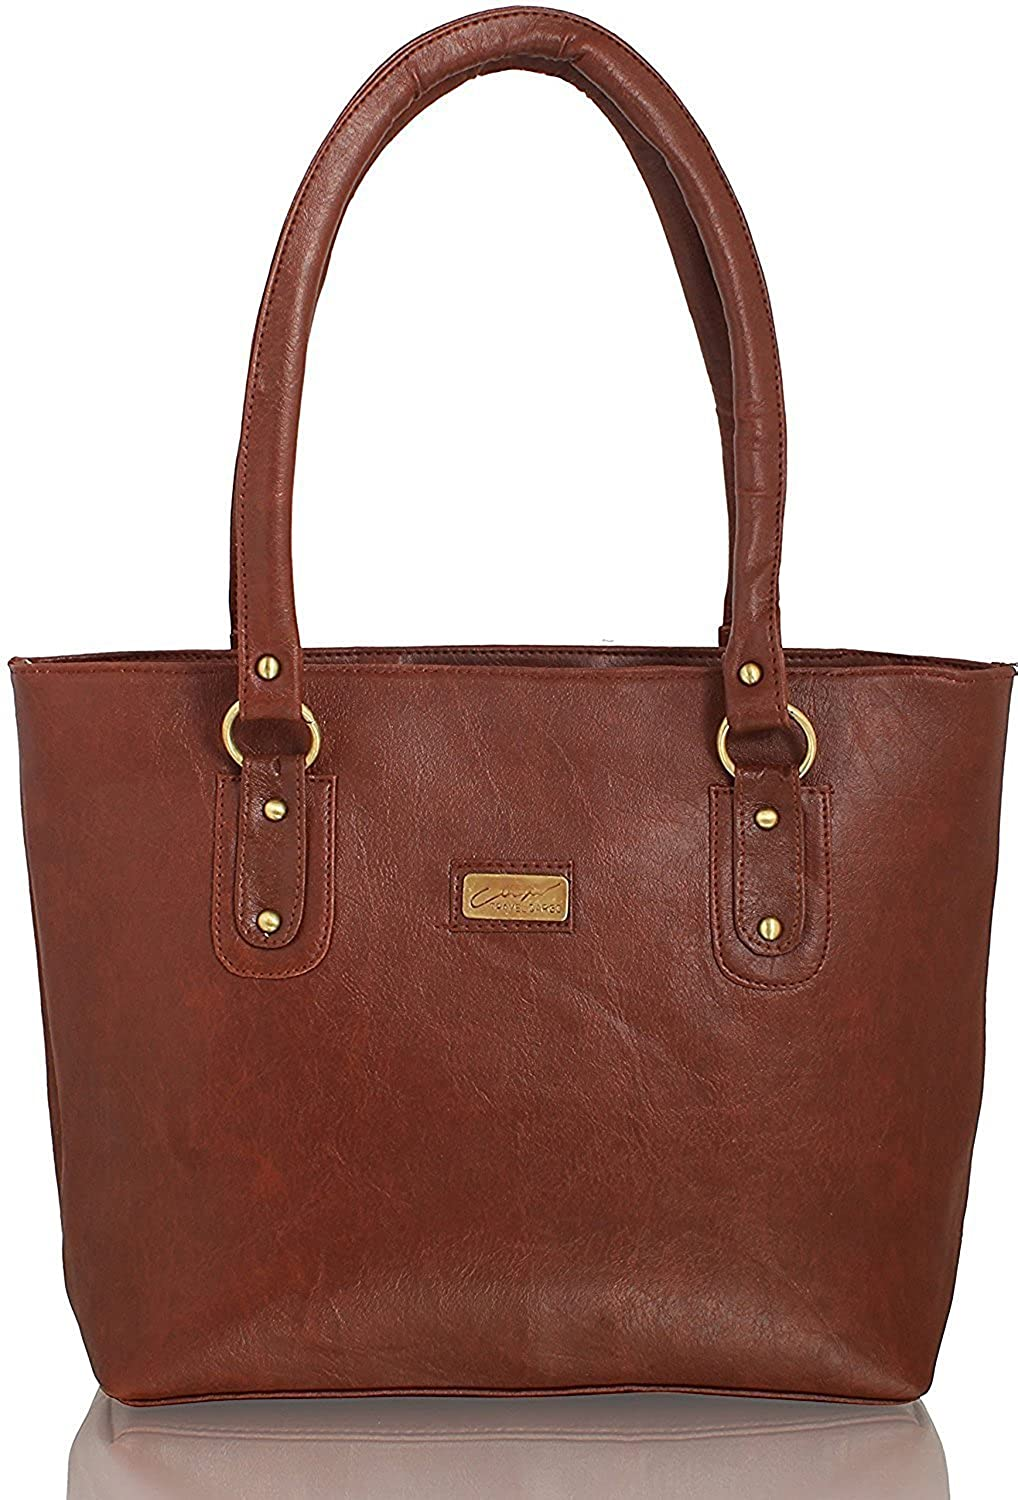 best women handbags below 500